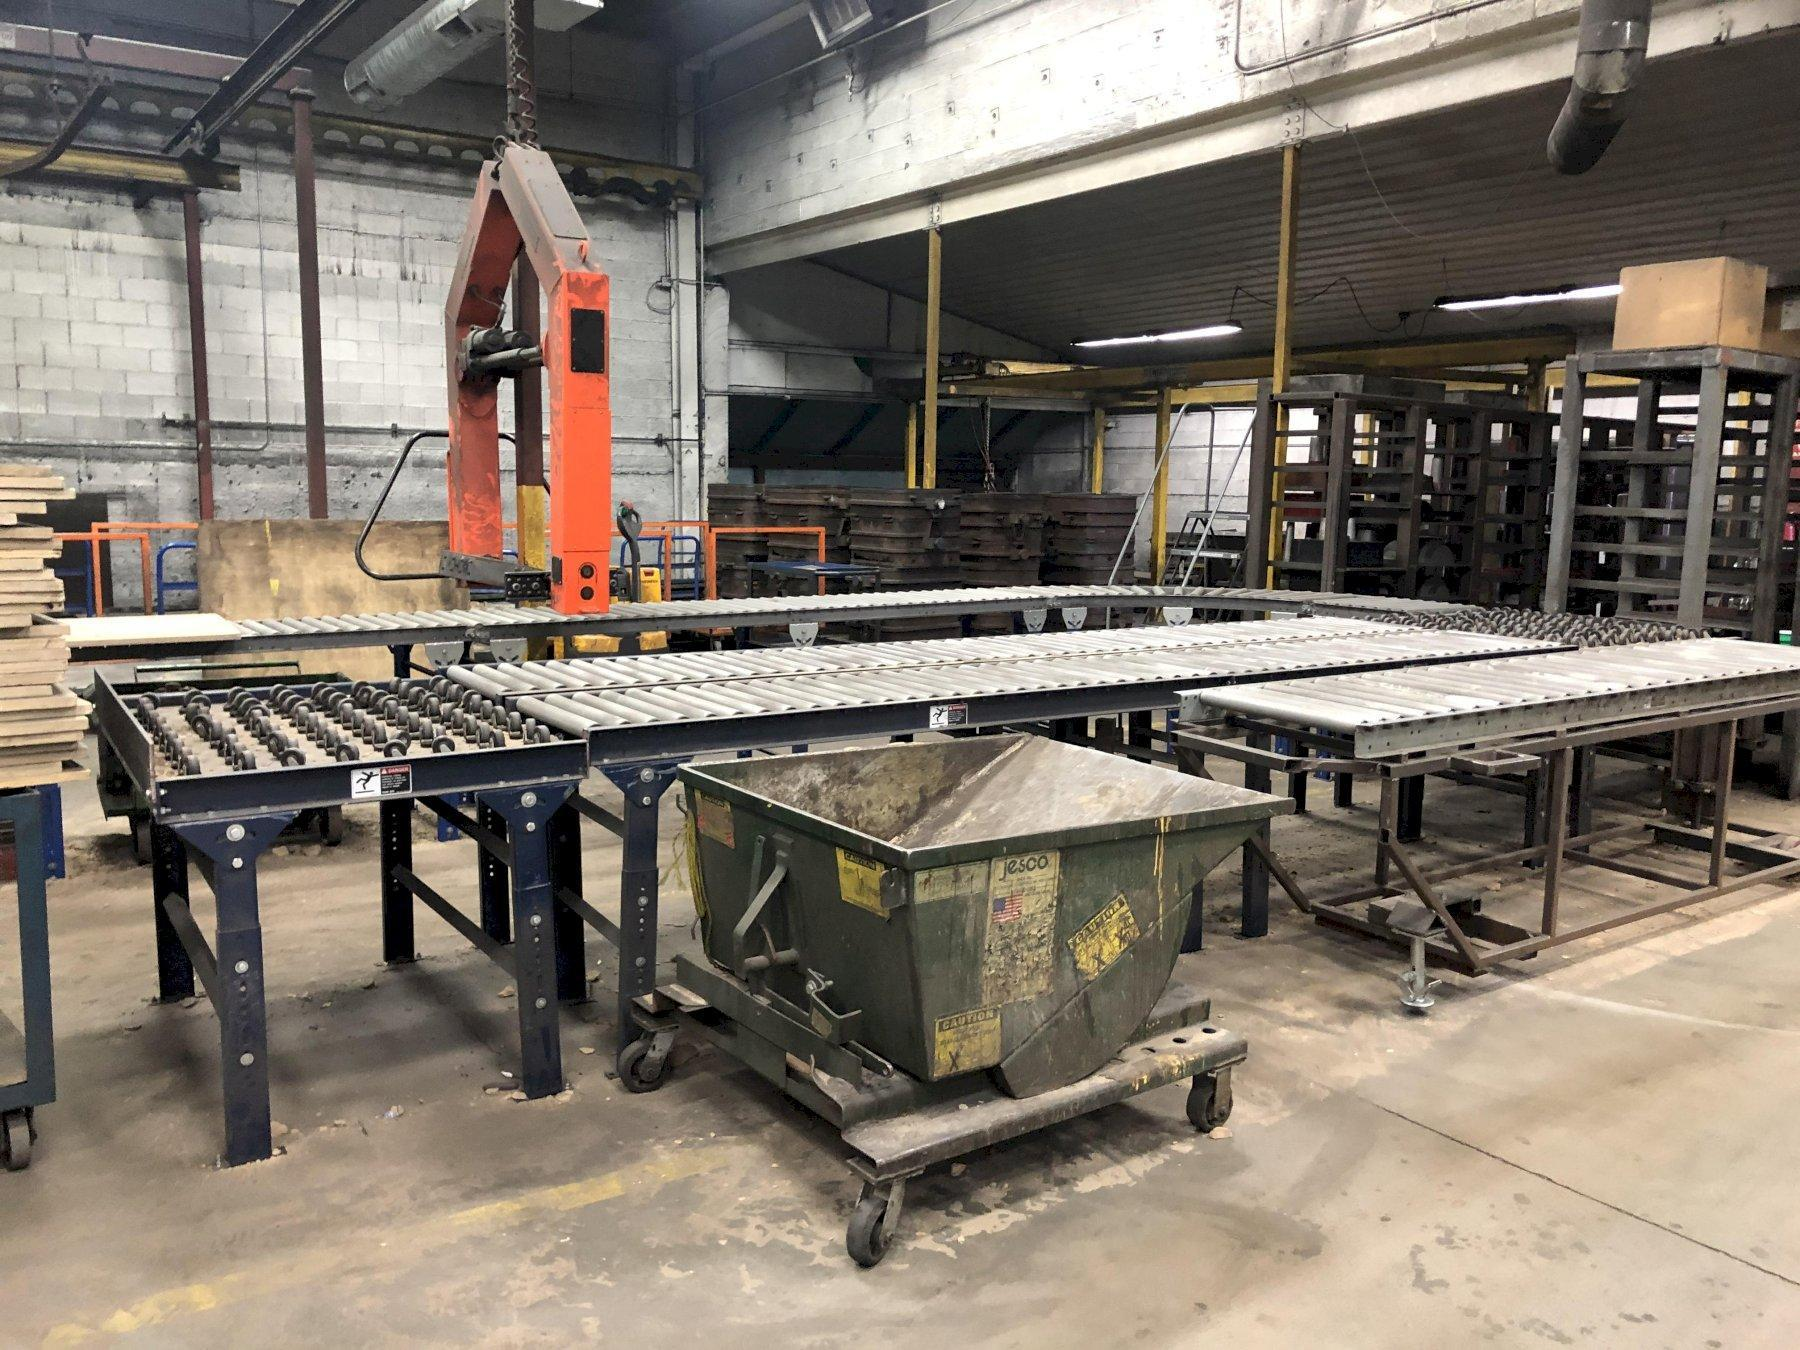 """COMPLETE NO BAKE SYSTEM NEW 2016 WITH SAND HOPPER AND SUPPORTS, PALMER ELECTRIC SAND HEATER WITH CONTROLS S/N H304, PALMER M200 MIXER S/N M433, PALMER PUMP SYSTEM S/N PS2453, PALMER 36"""" X 60"""" COMPACTION TABLE S/N V512, 2- AIR OPERATED 20"""" X 30"""" ROLLOVERS, ROLLER CONVEYOR AND QUIPTEC MODEL QSR2K MOLD HANDLER S/N 45-4191 WITH BUDGIT 1 TON ELECTRIC HOIST 3 WAY PENDENT CONTROLS"""